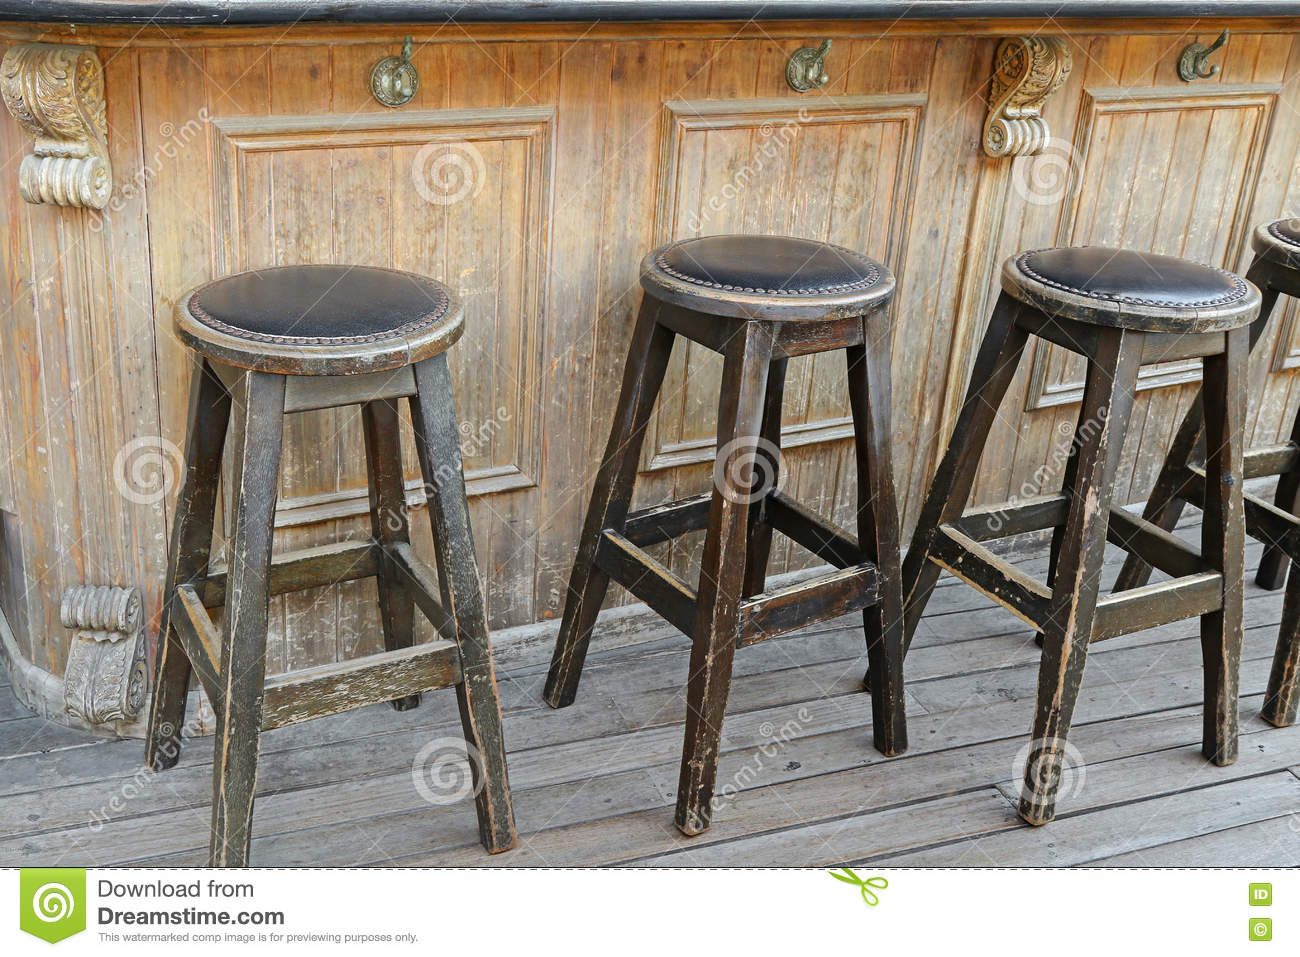 Royalty-Free Stock Photo. Download Vintage And Rustic Wooden Bar Stools ... & Vintage And Rustic Wooden Bar Stools On Wooden Floor In Front Of ... islam-shia.org